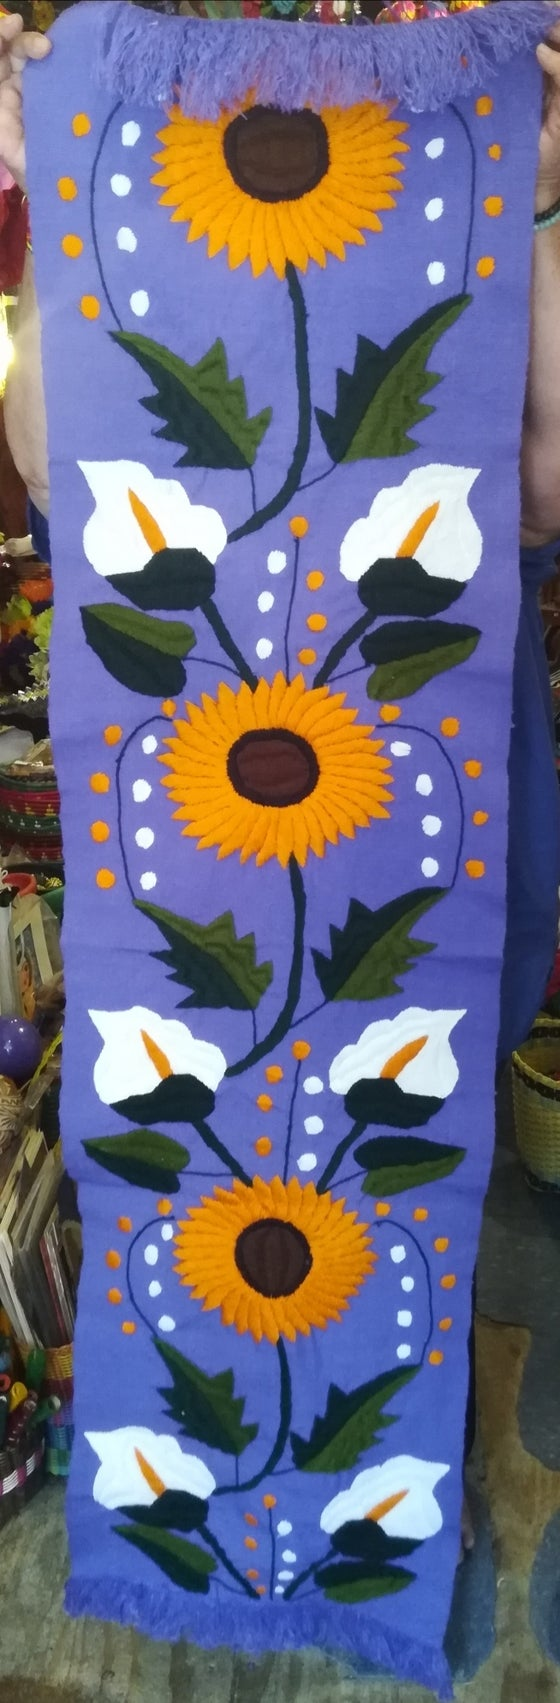 Image of Handmade, Hand Embroidered Mexican Table Runner